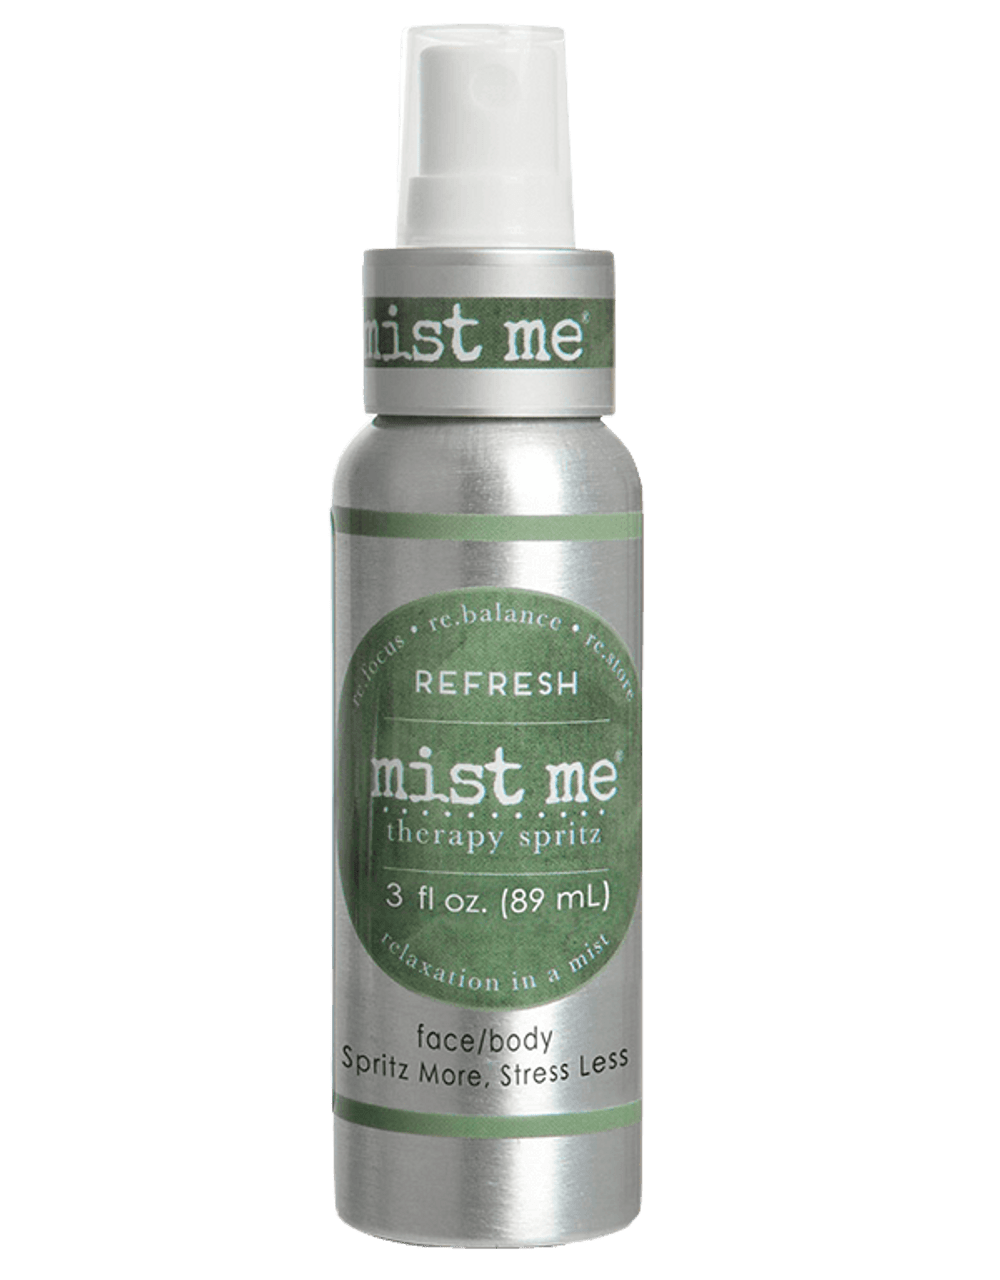 Rejuvenate and bask in the calmness of our soothing cucumber mint blend. It's the perfect way to REFRESH and replenish.  At the first sign of stress simply spritz your face or body with Mist Me Therapy Spritz and allow the calming to begin. This gently scented spritz promises to relax, clear your mind, and soften the rough edges of your day. A quick mist soothes your skin as well as your soul.